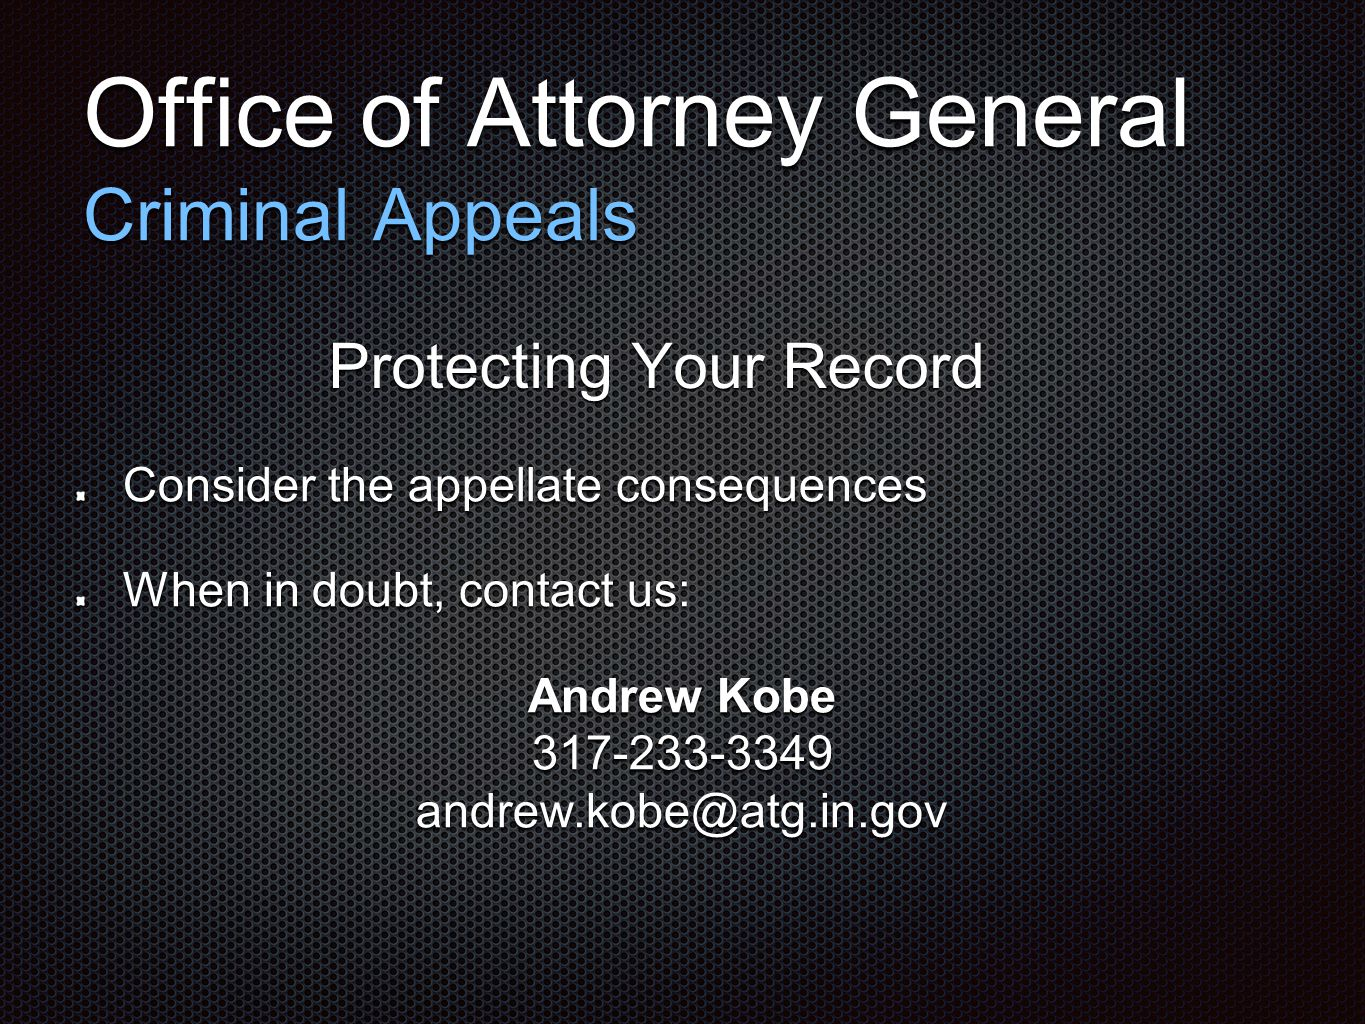 Office of Attorney General Criminal Appeals Protecting Your Record Consider the appellate consequences When in doubt, contact us: Andrew Kobe 317-233-